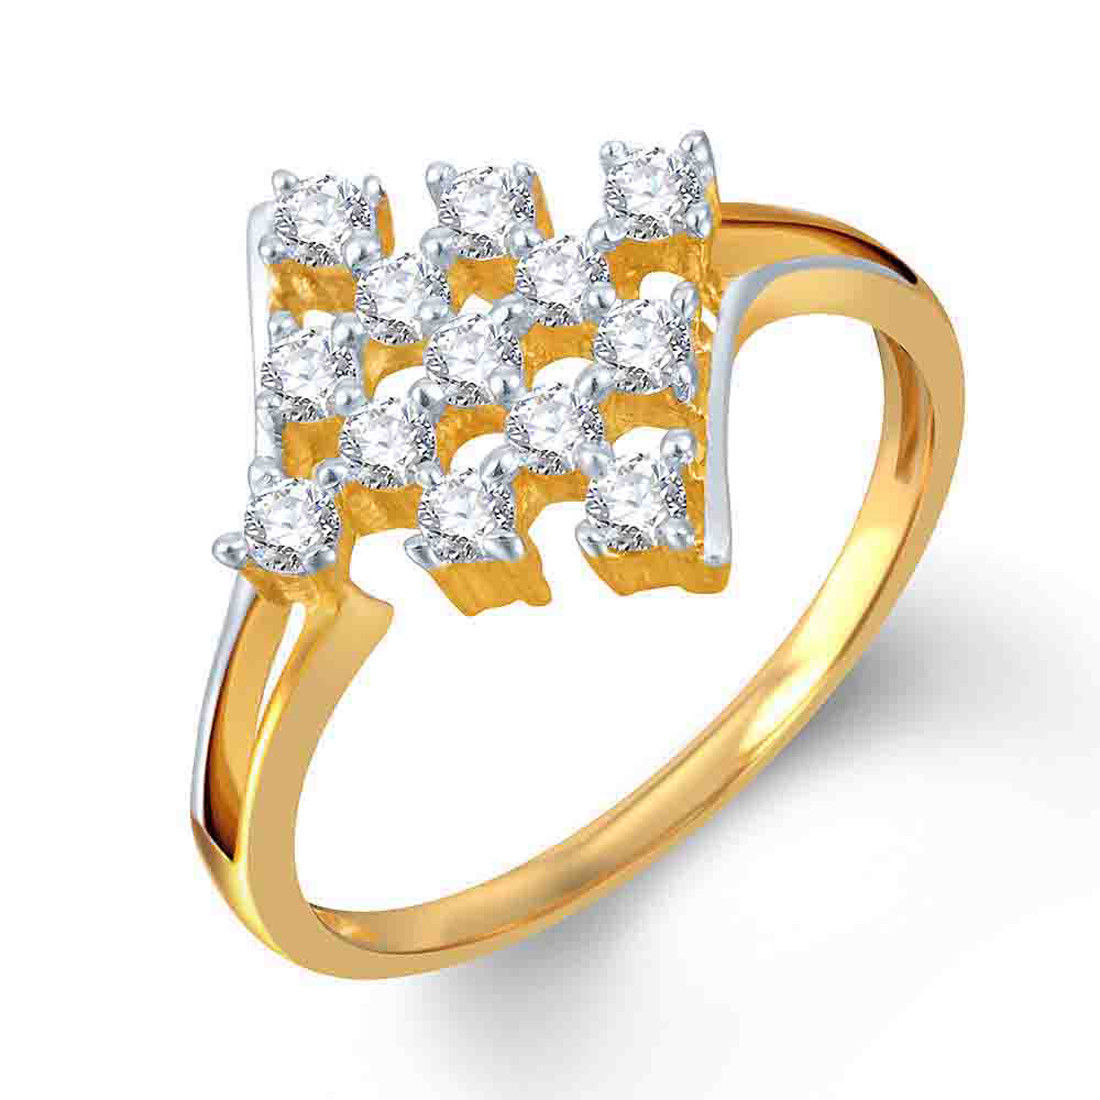 Primary image for 14k White Gold Over 925 Silver Cluster Diamond Ring Women Jewelry Gift For Her